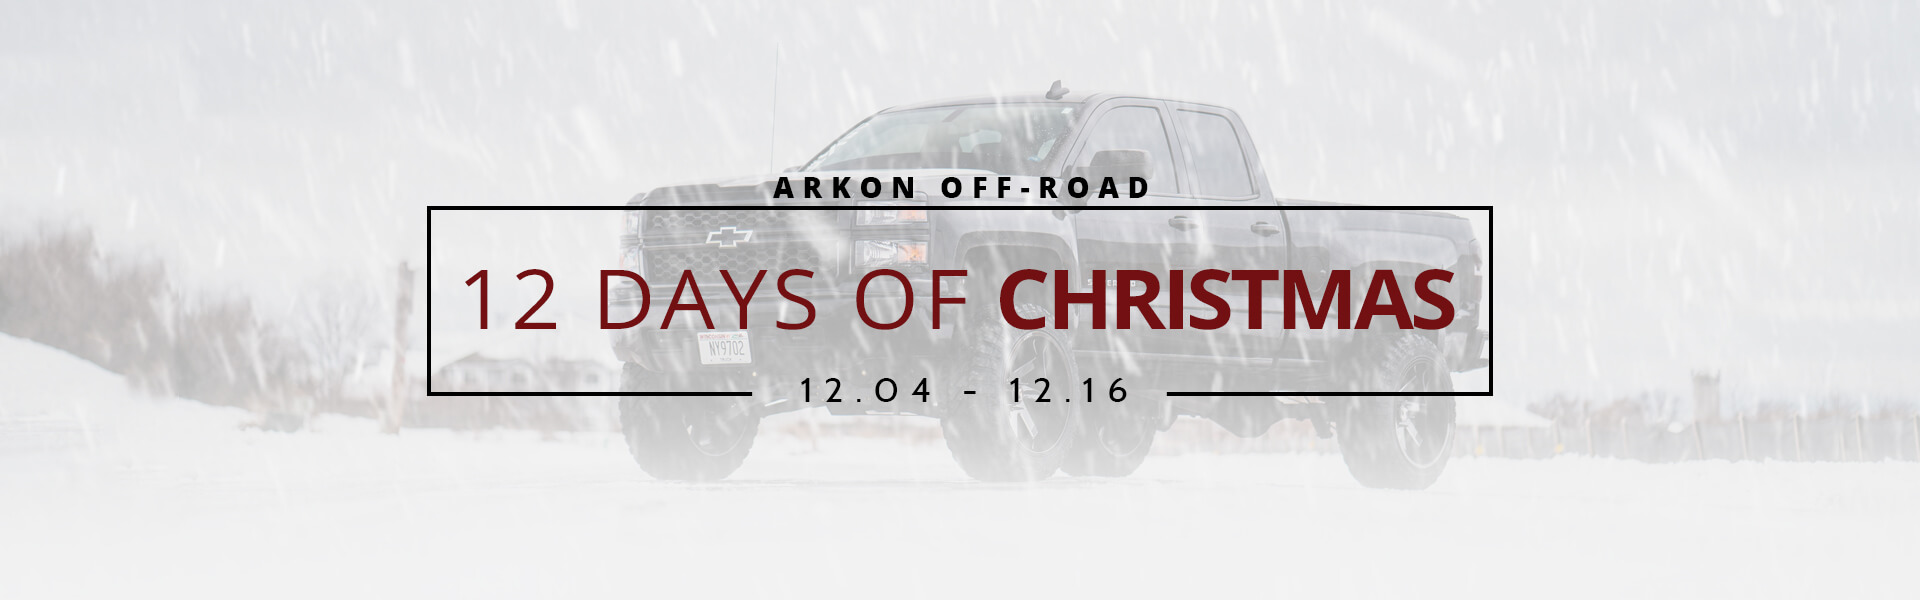 12 Days of Christmas Sale Banner